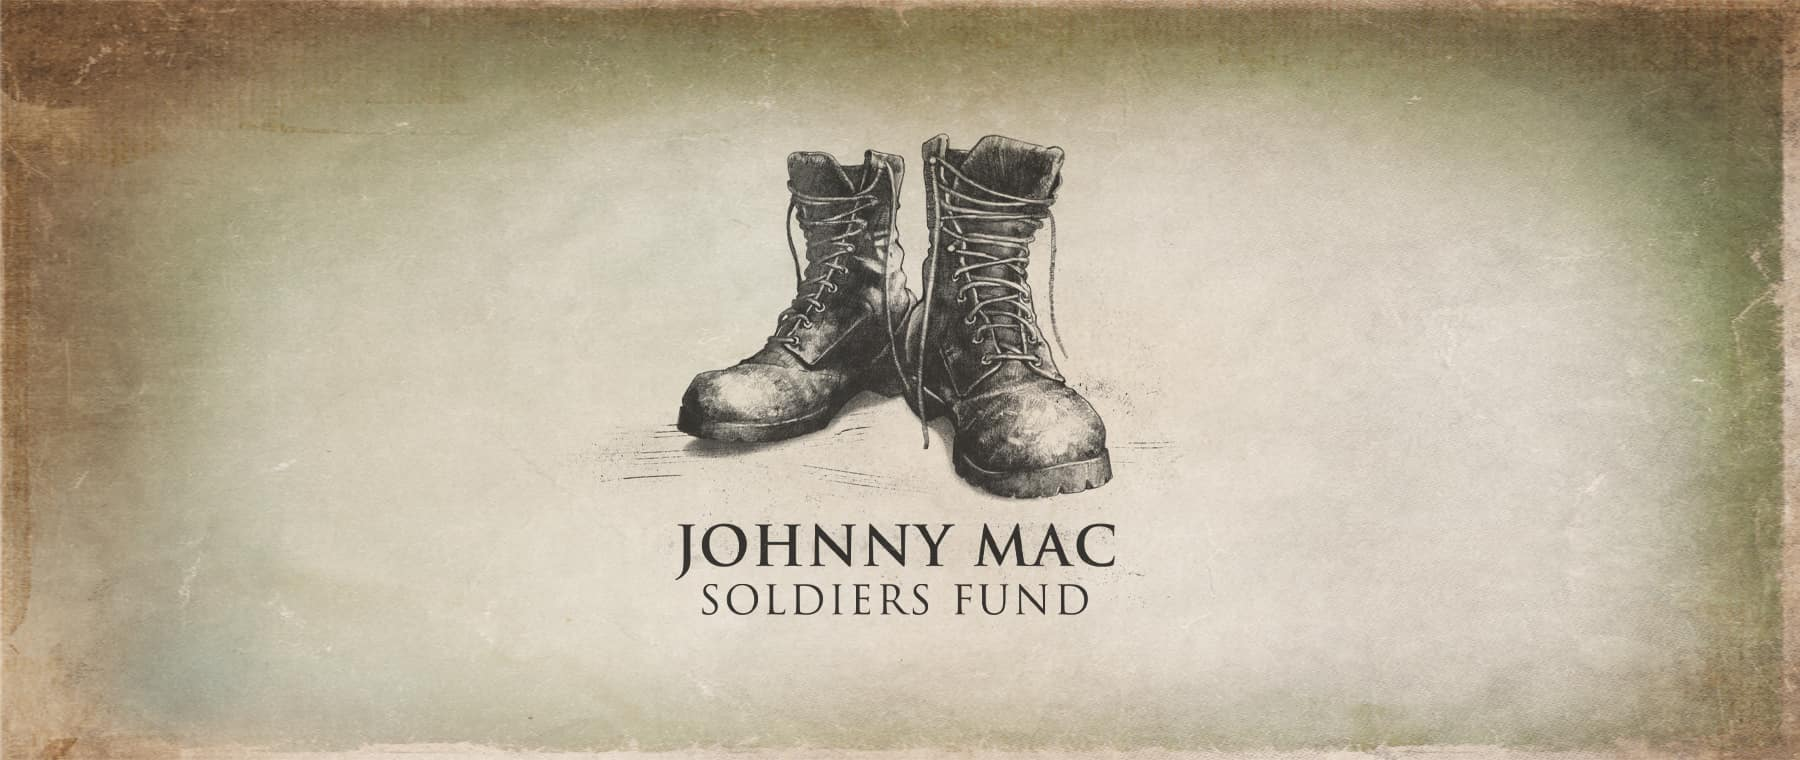 Johnny Mac Logo Dealer Website Carousel_1800x760